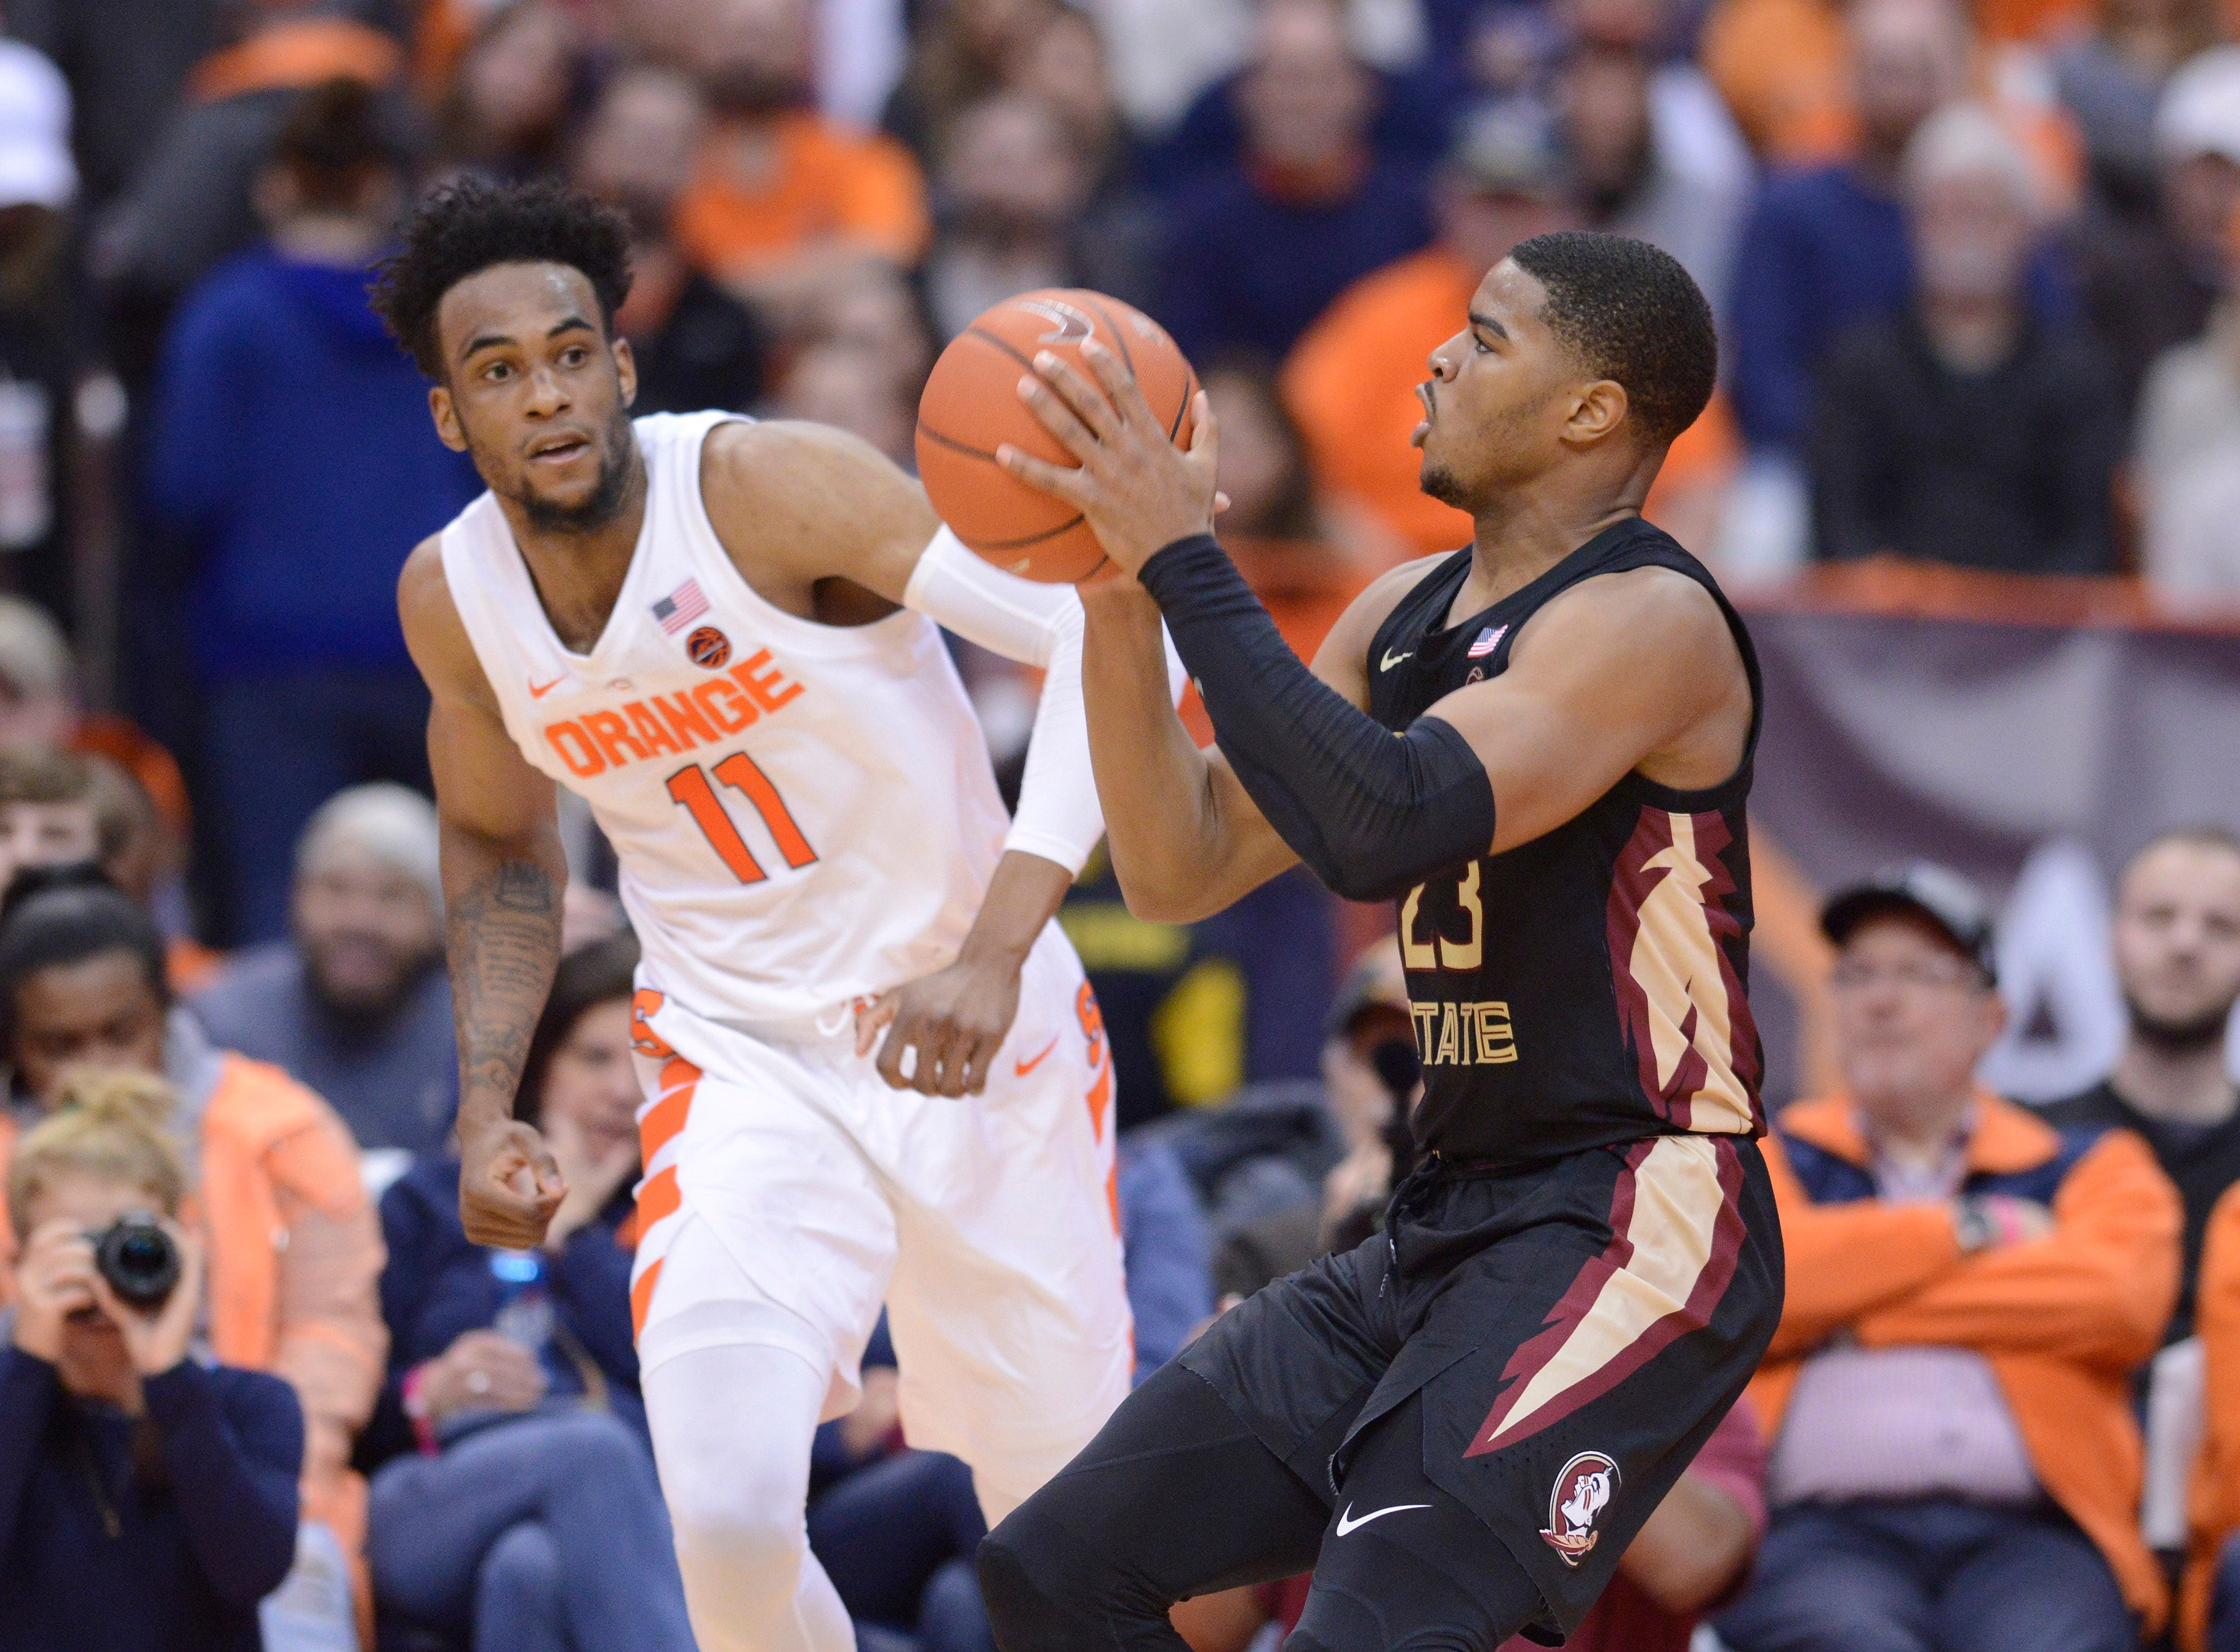 Feb 5, 2019; Syracuse, NY, USA; Florida State Seminoles guard M.J. Walker (23) shoots the ball as Syracuse Orange forward Oshae Brissett (11) defends in the second half at the Carrier Dome. Mandatory Credit: Mark Konezny-USA TODAY Sports